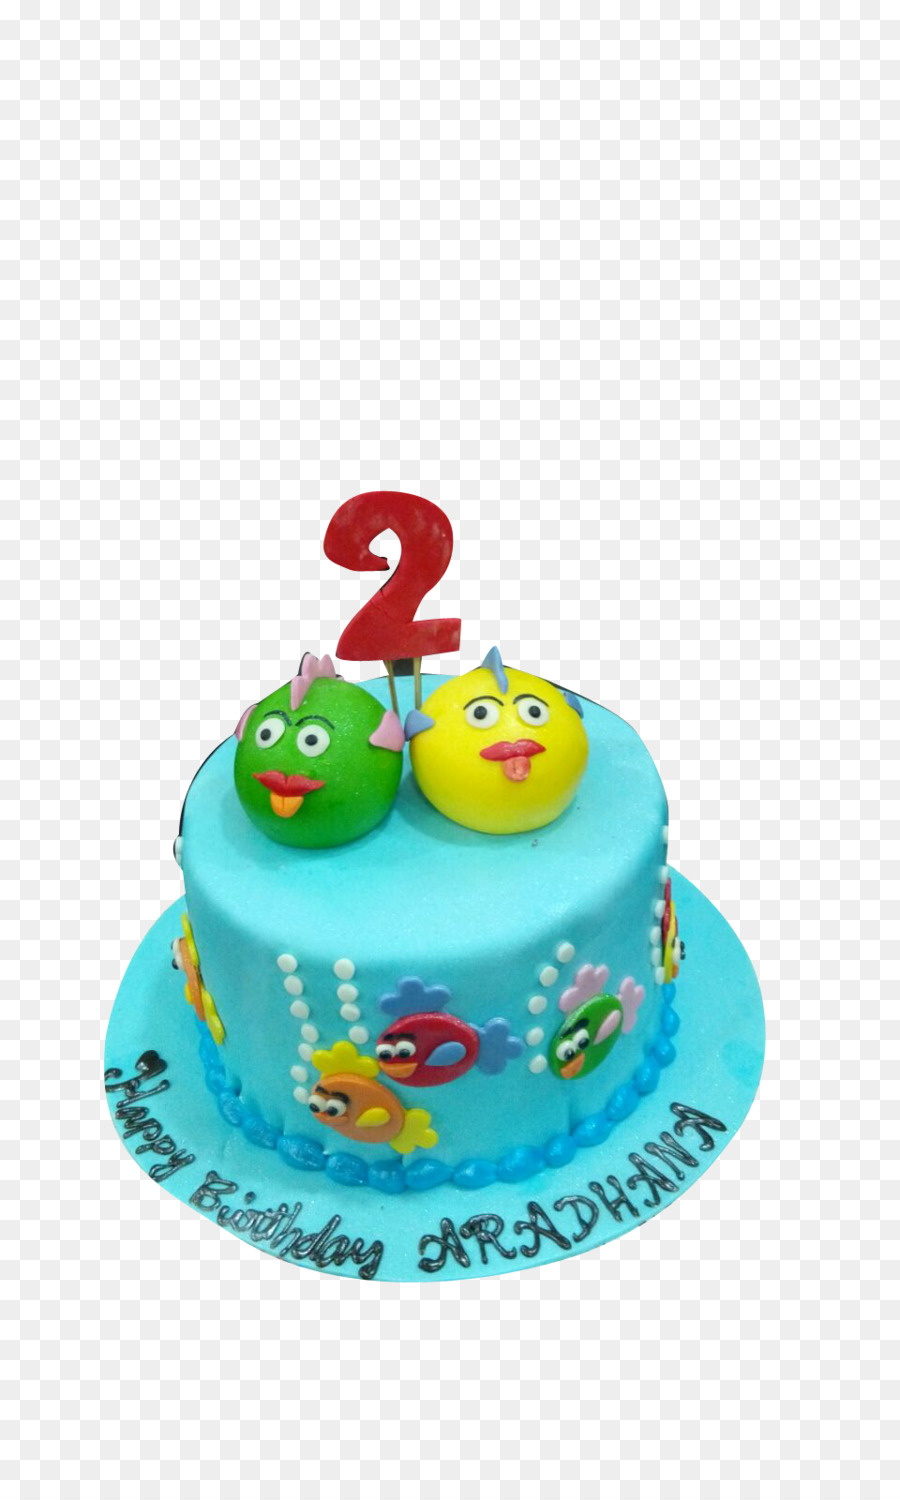 Cool Cartoon Birthday Cake Download 960 1600 Free Transparent Personalised Birthday Cards Sponlily Jamesorg